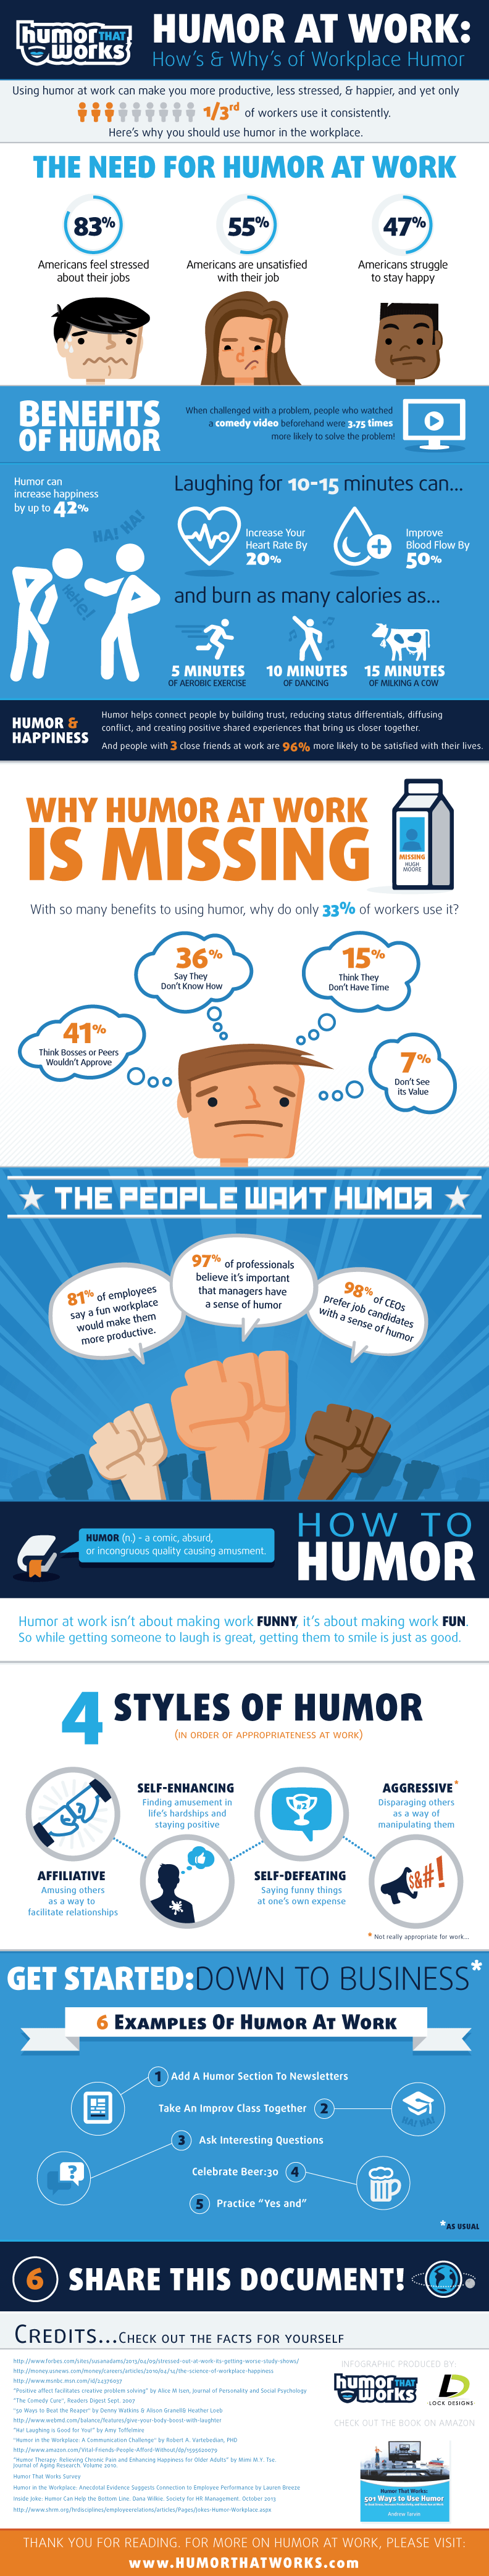 Humor at Work Infographic